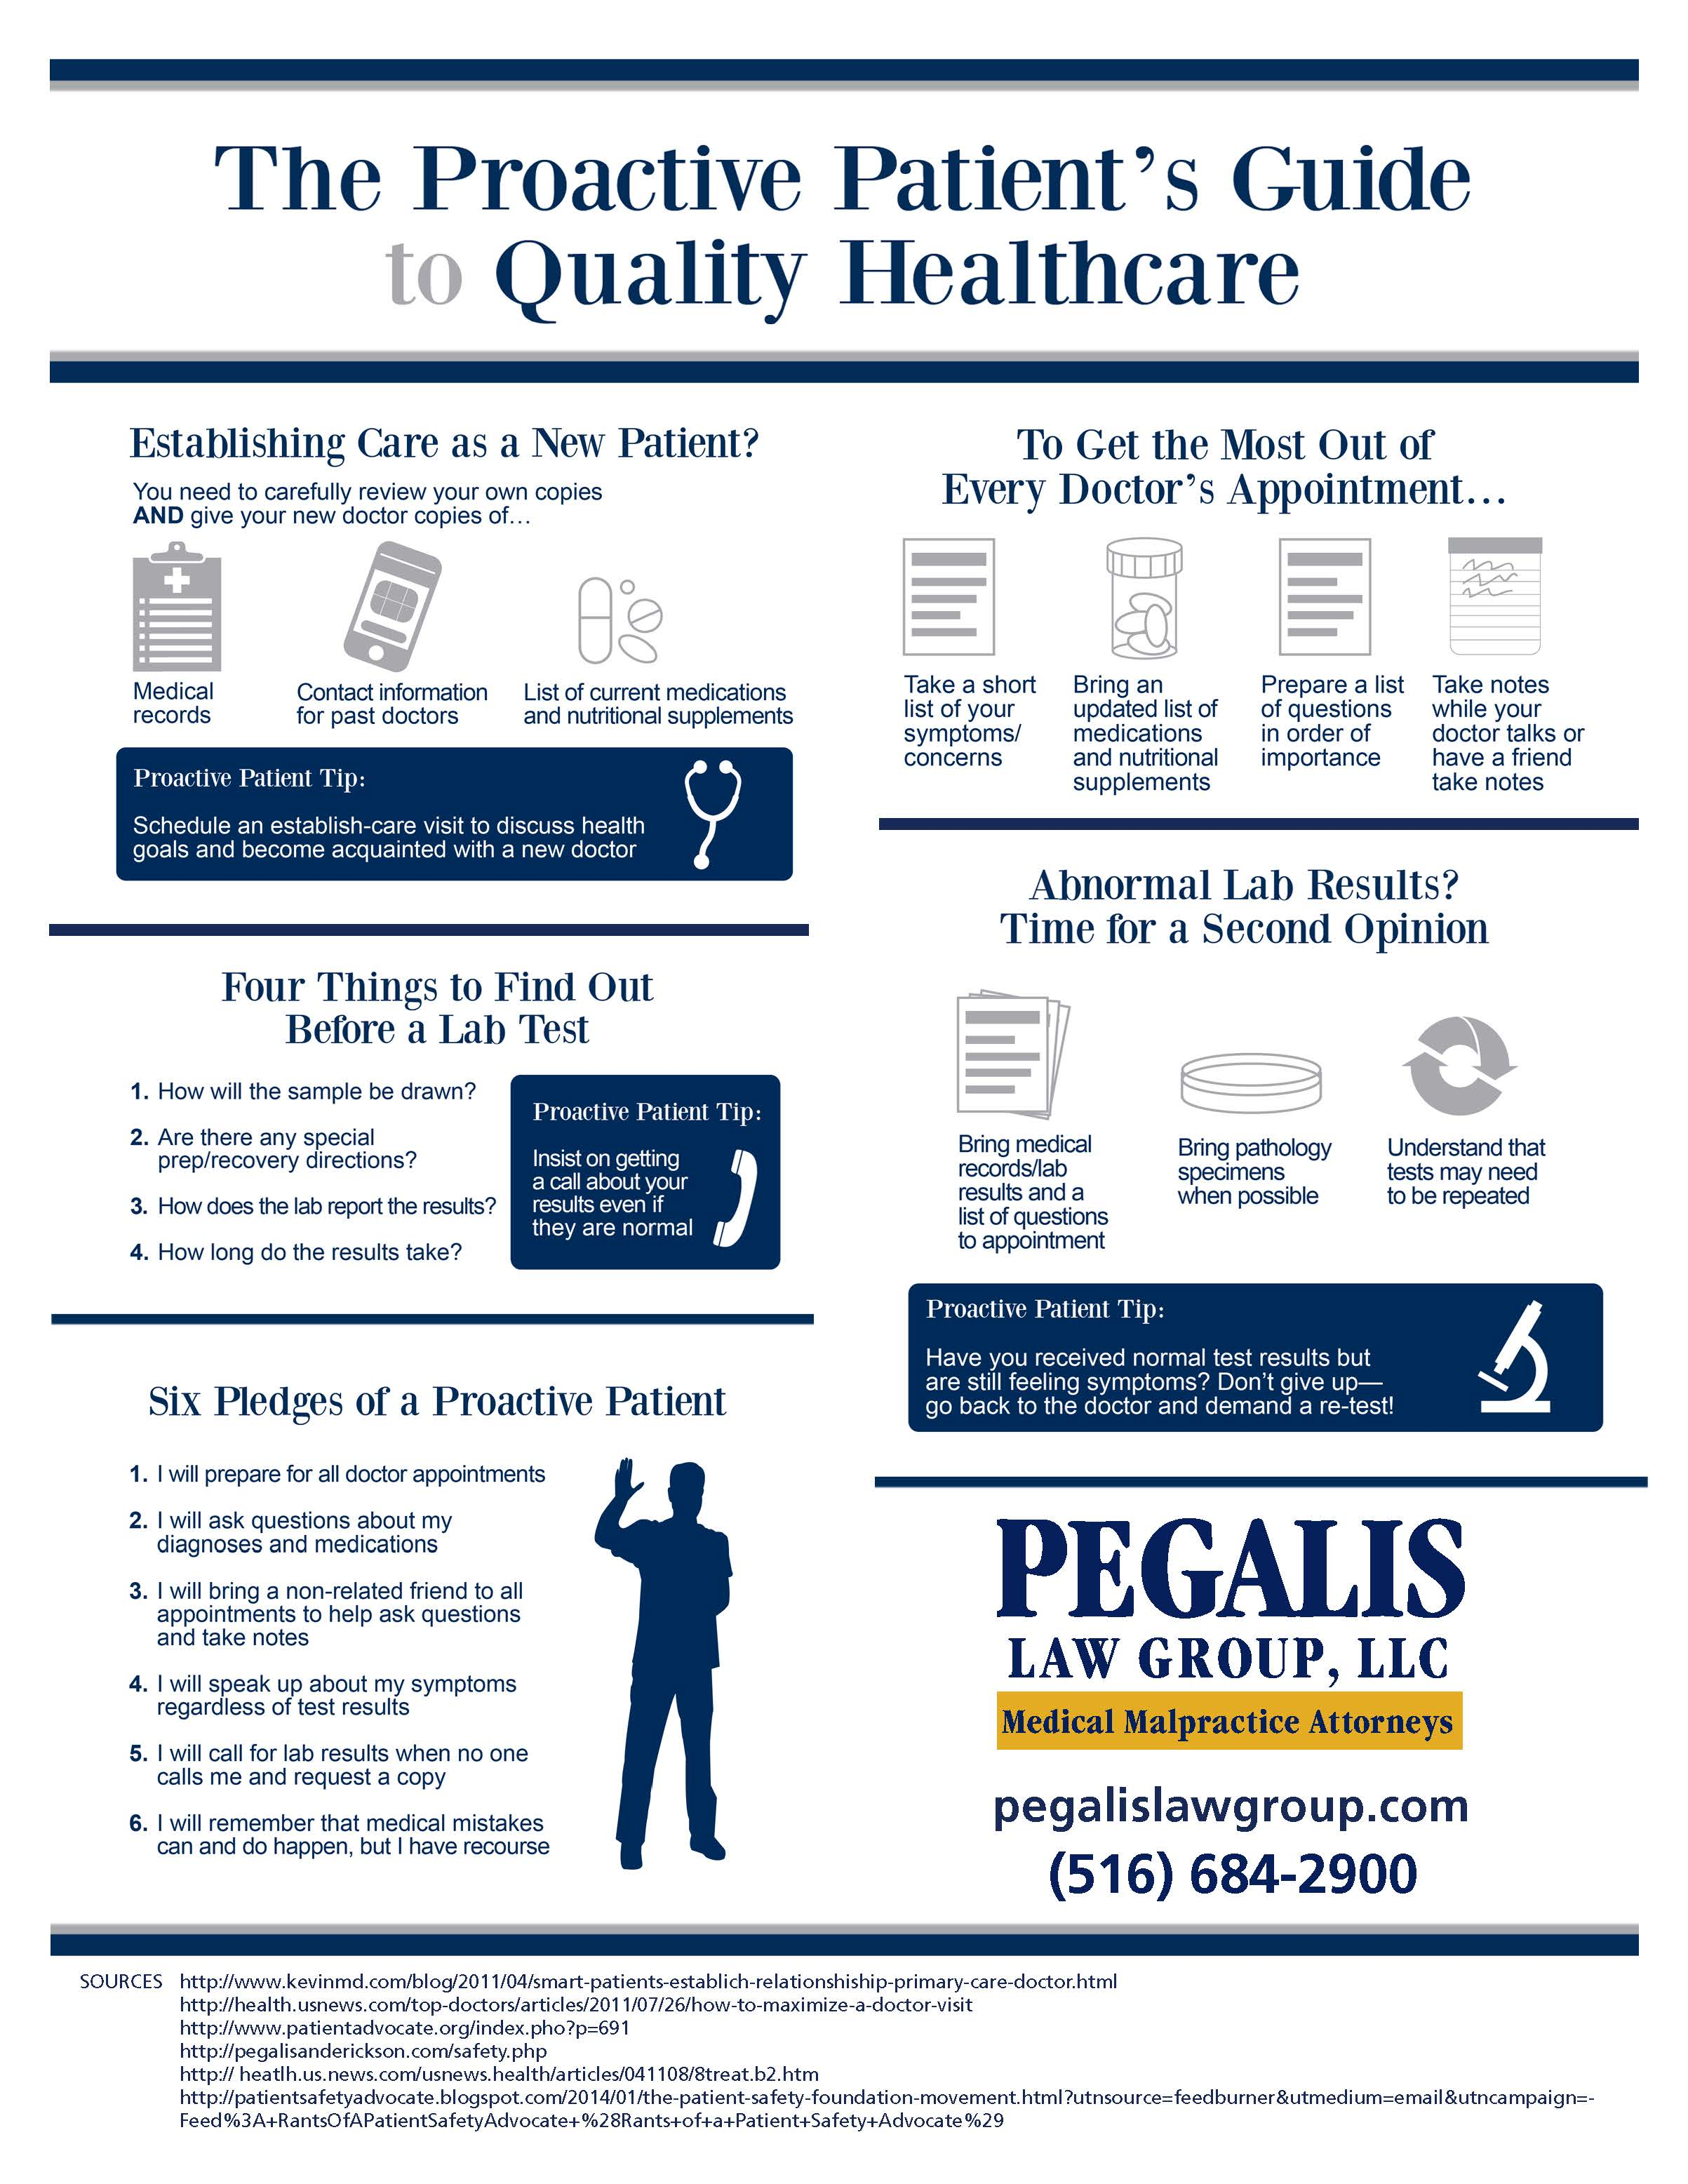 Proactive-Patient-Guide-Pegalis-Law-Group